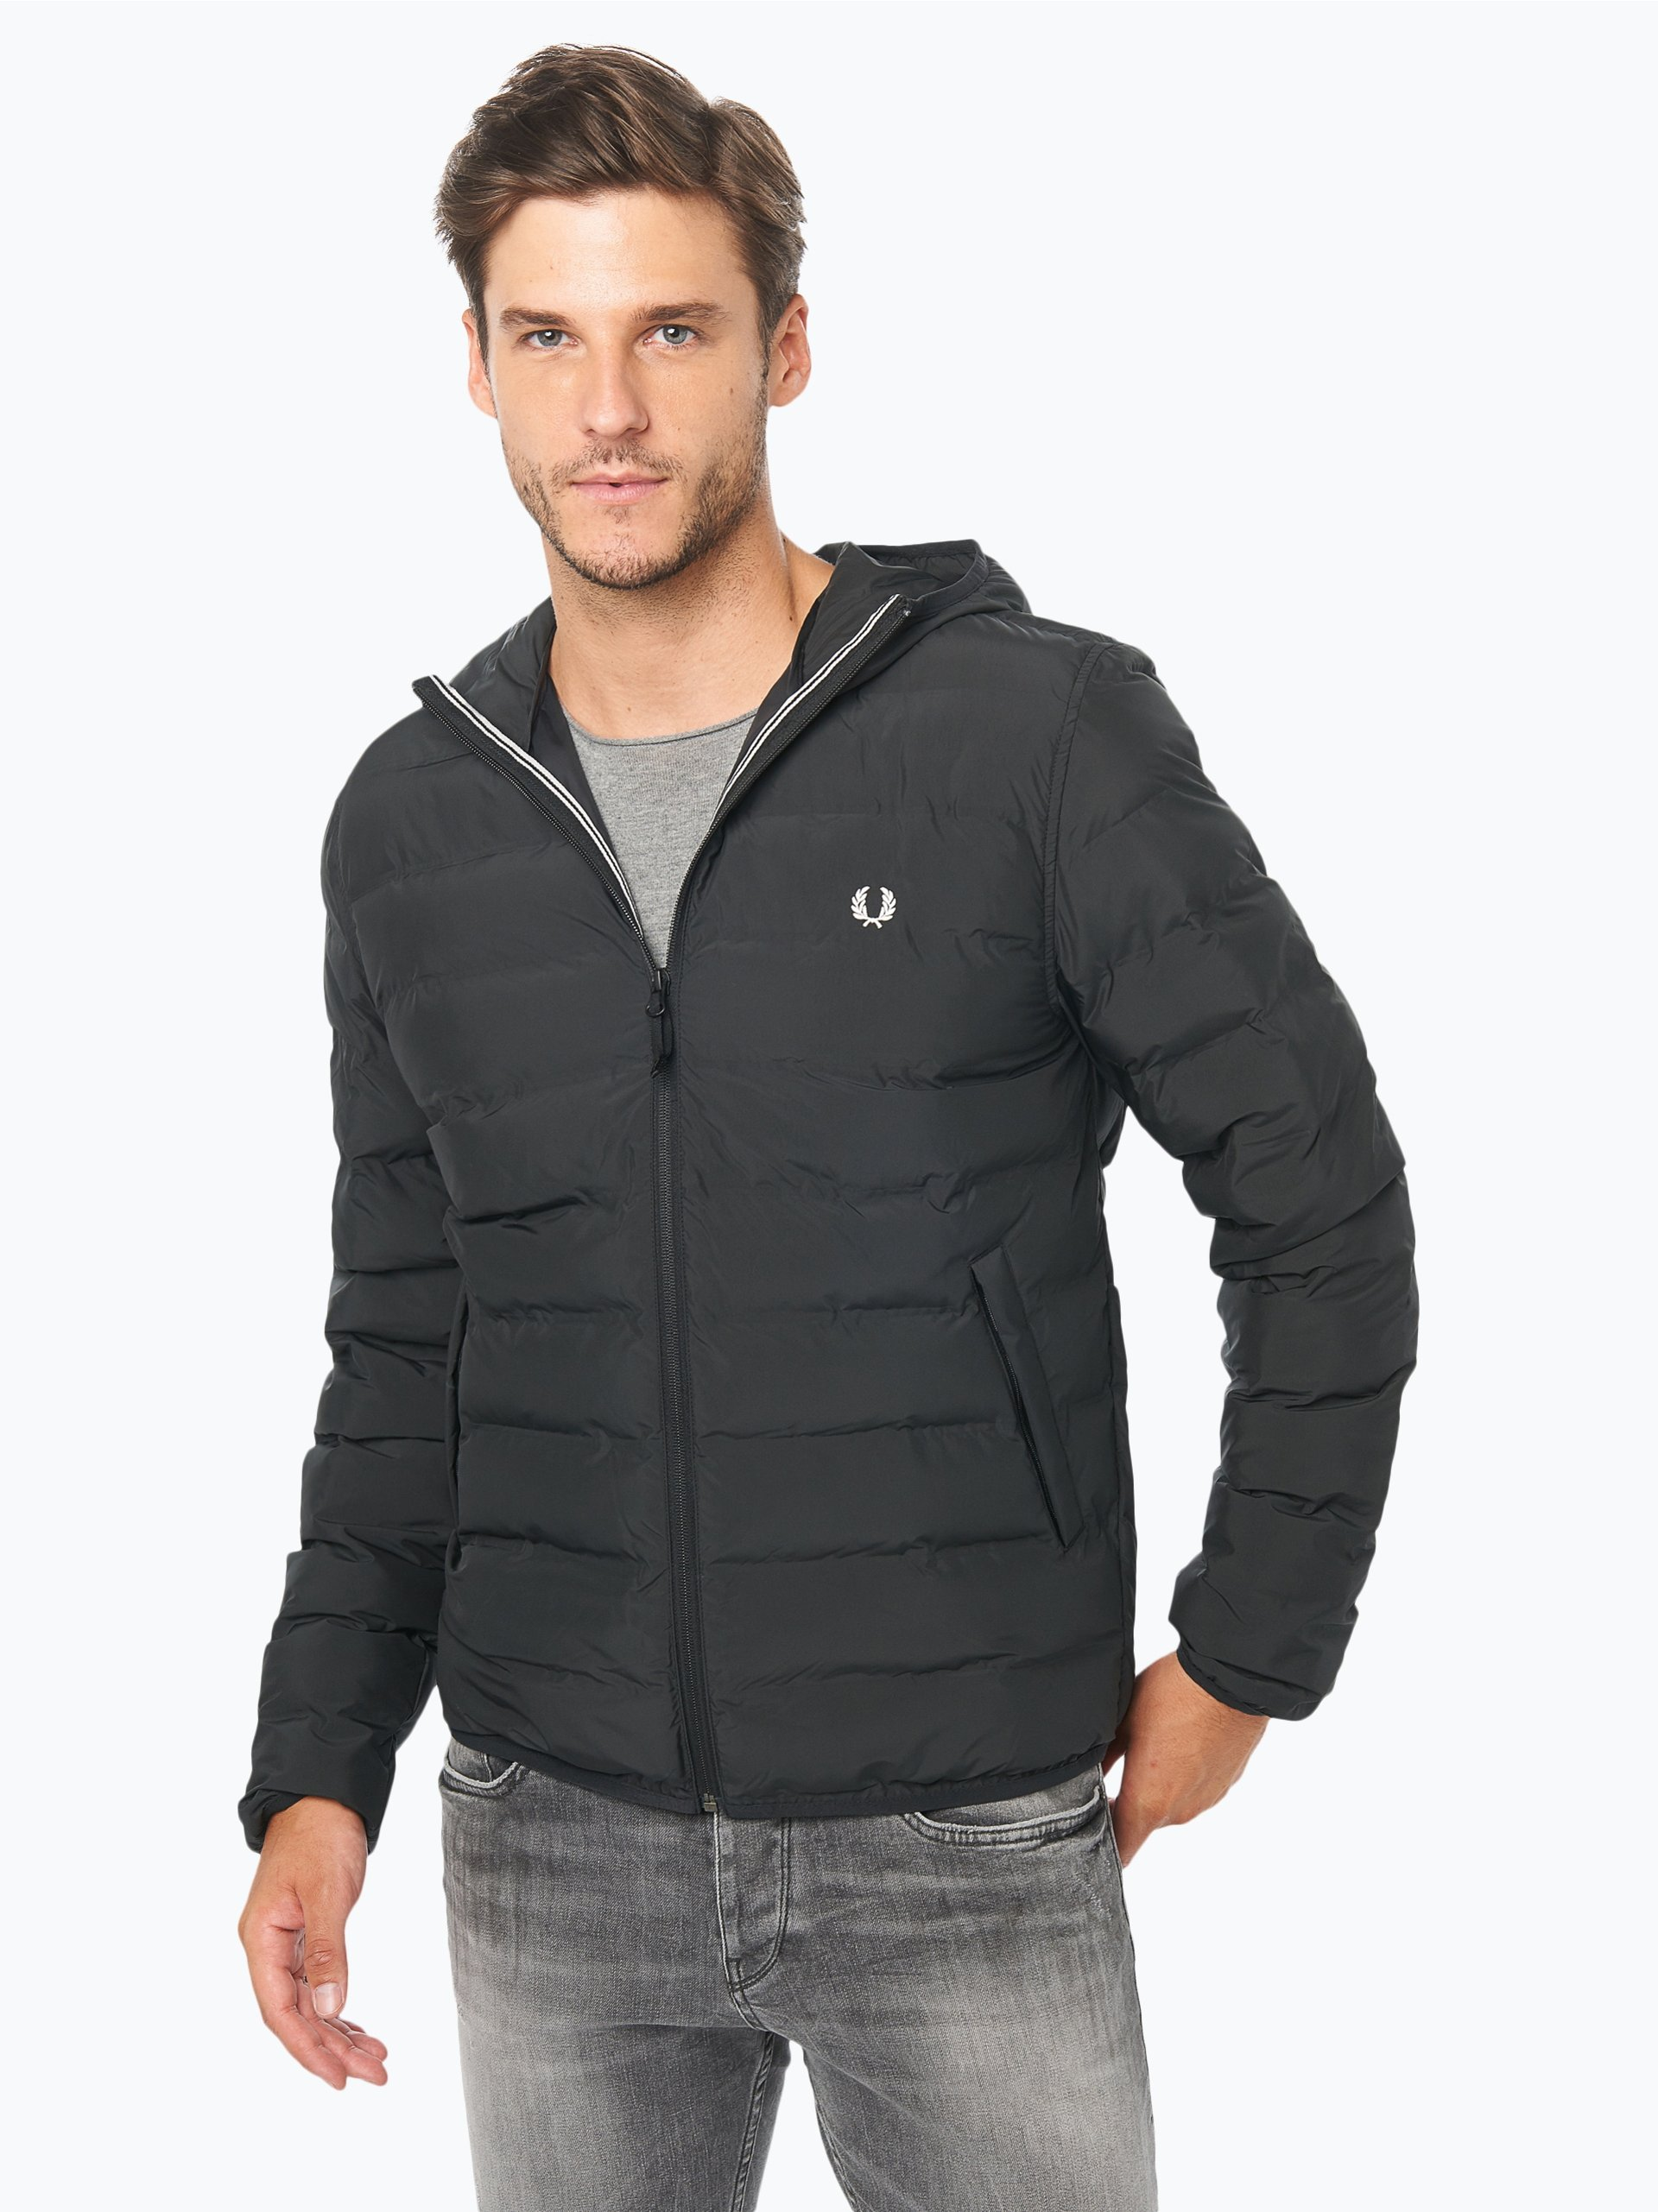 fred perry herren steppjacke schwarz uni online kaufen. Black Bedroom Furniture Sets. Home Design Ideas